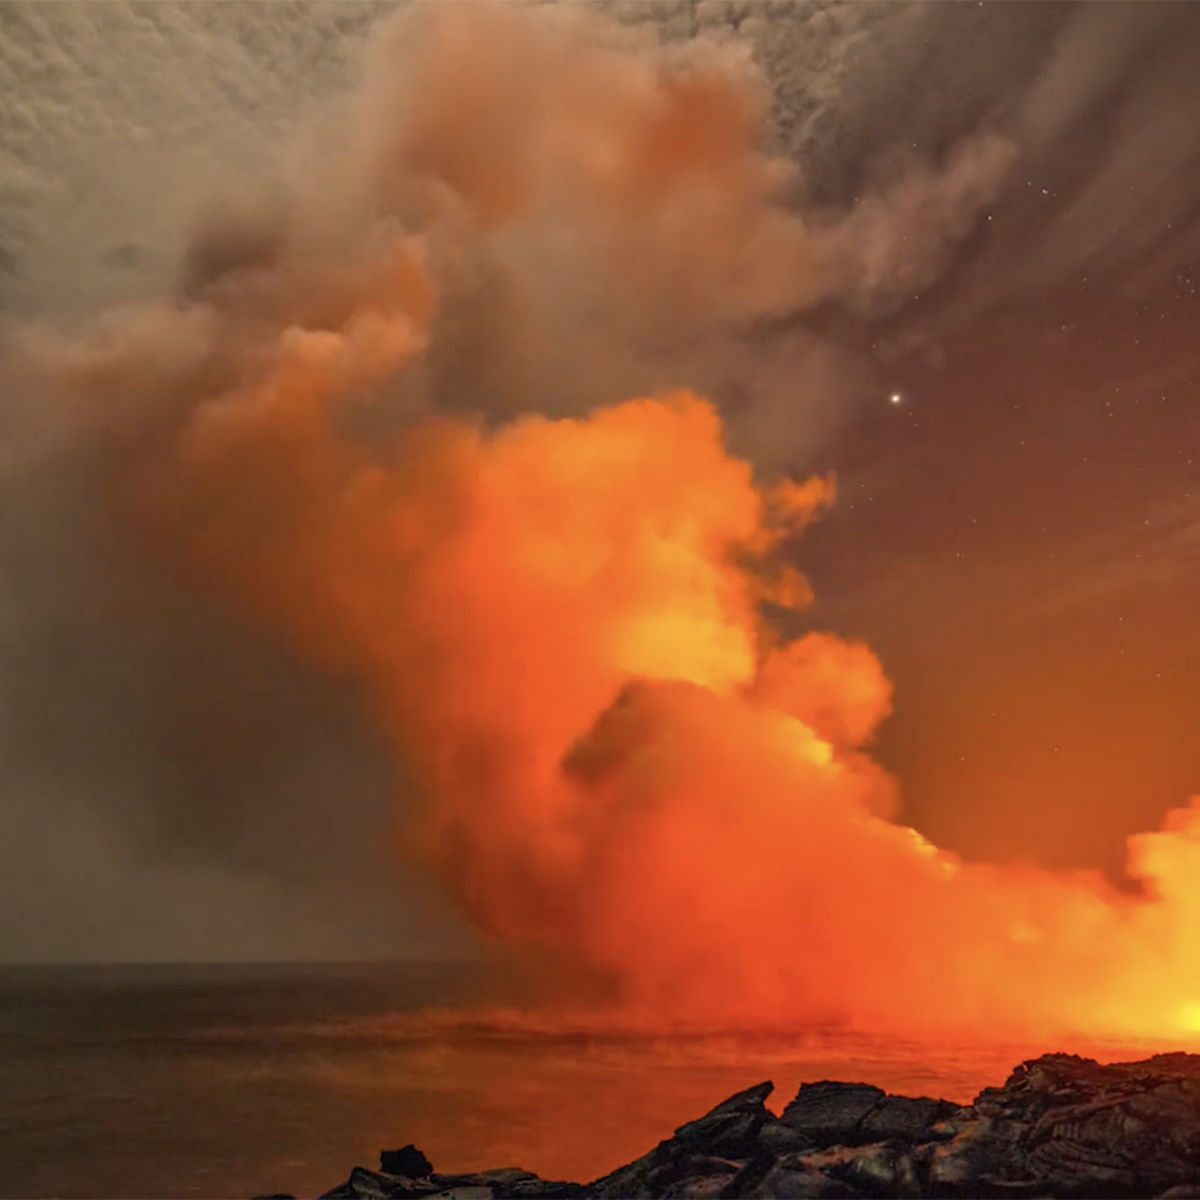 The lava flow 61g pours from Kilauea volcano into the Pacific. Credit: Jack Fusco and Mark Jacobs